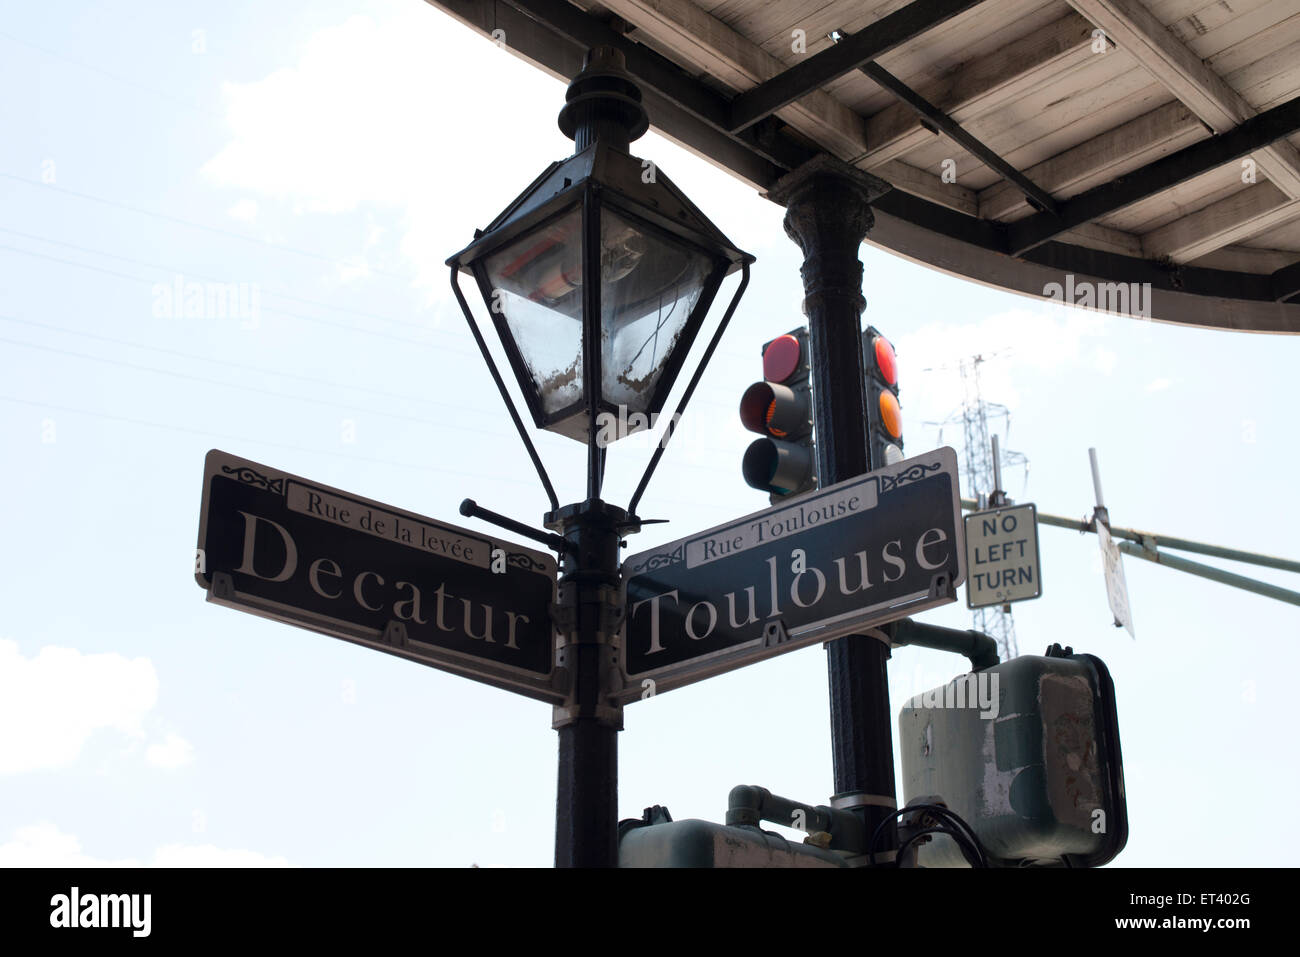 Street signs that mark the cross streets of decatur and Toulouse in New Orleans Louisiana - Stock Image